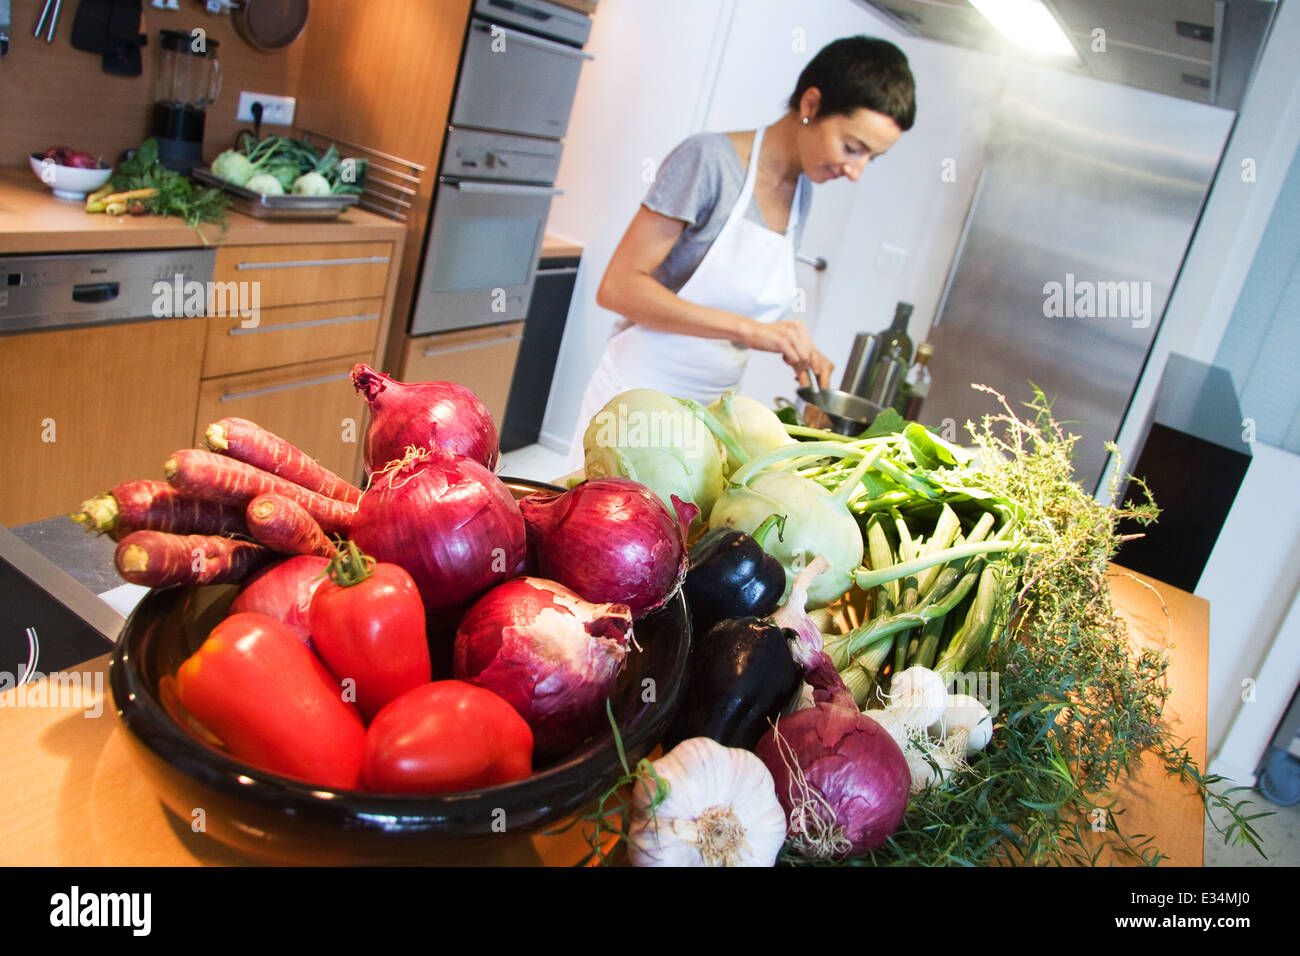 Alsatian Cooking Course with Isabelle Sipp in Colmar France - Stock Image